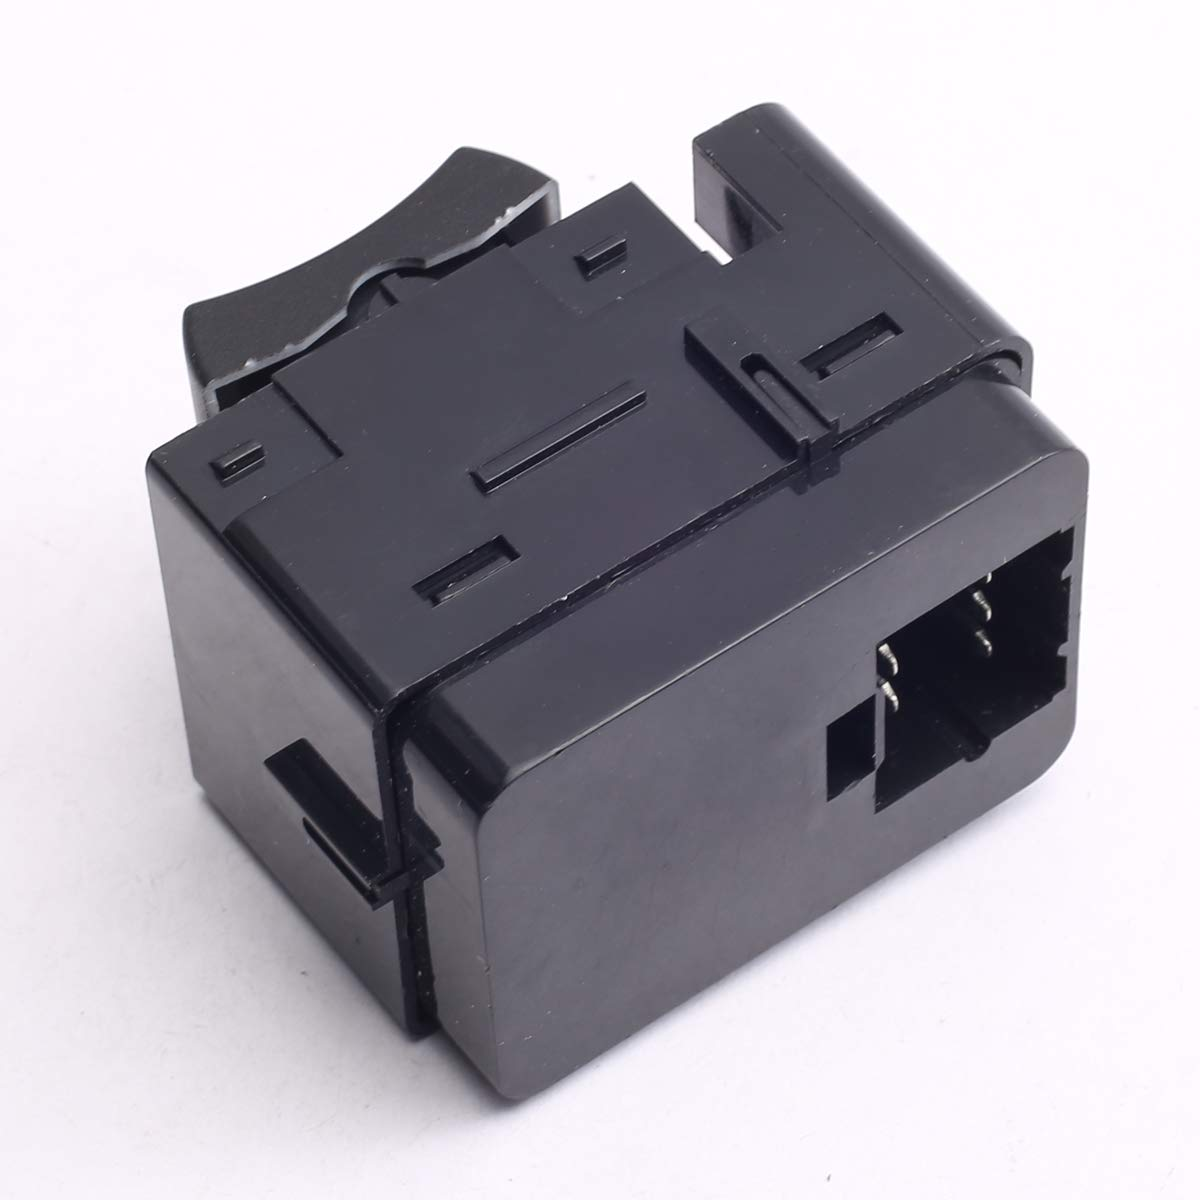 CENTAURUS Power Window Switch Driver Side Replacement for 2000-2005 Chevrolet Monte Carlo 2003-2007 Chevrolet Express 2003-2007 Savana Replace # 10284860 Power Window Master Control Switch